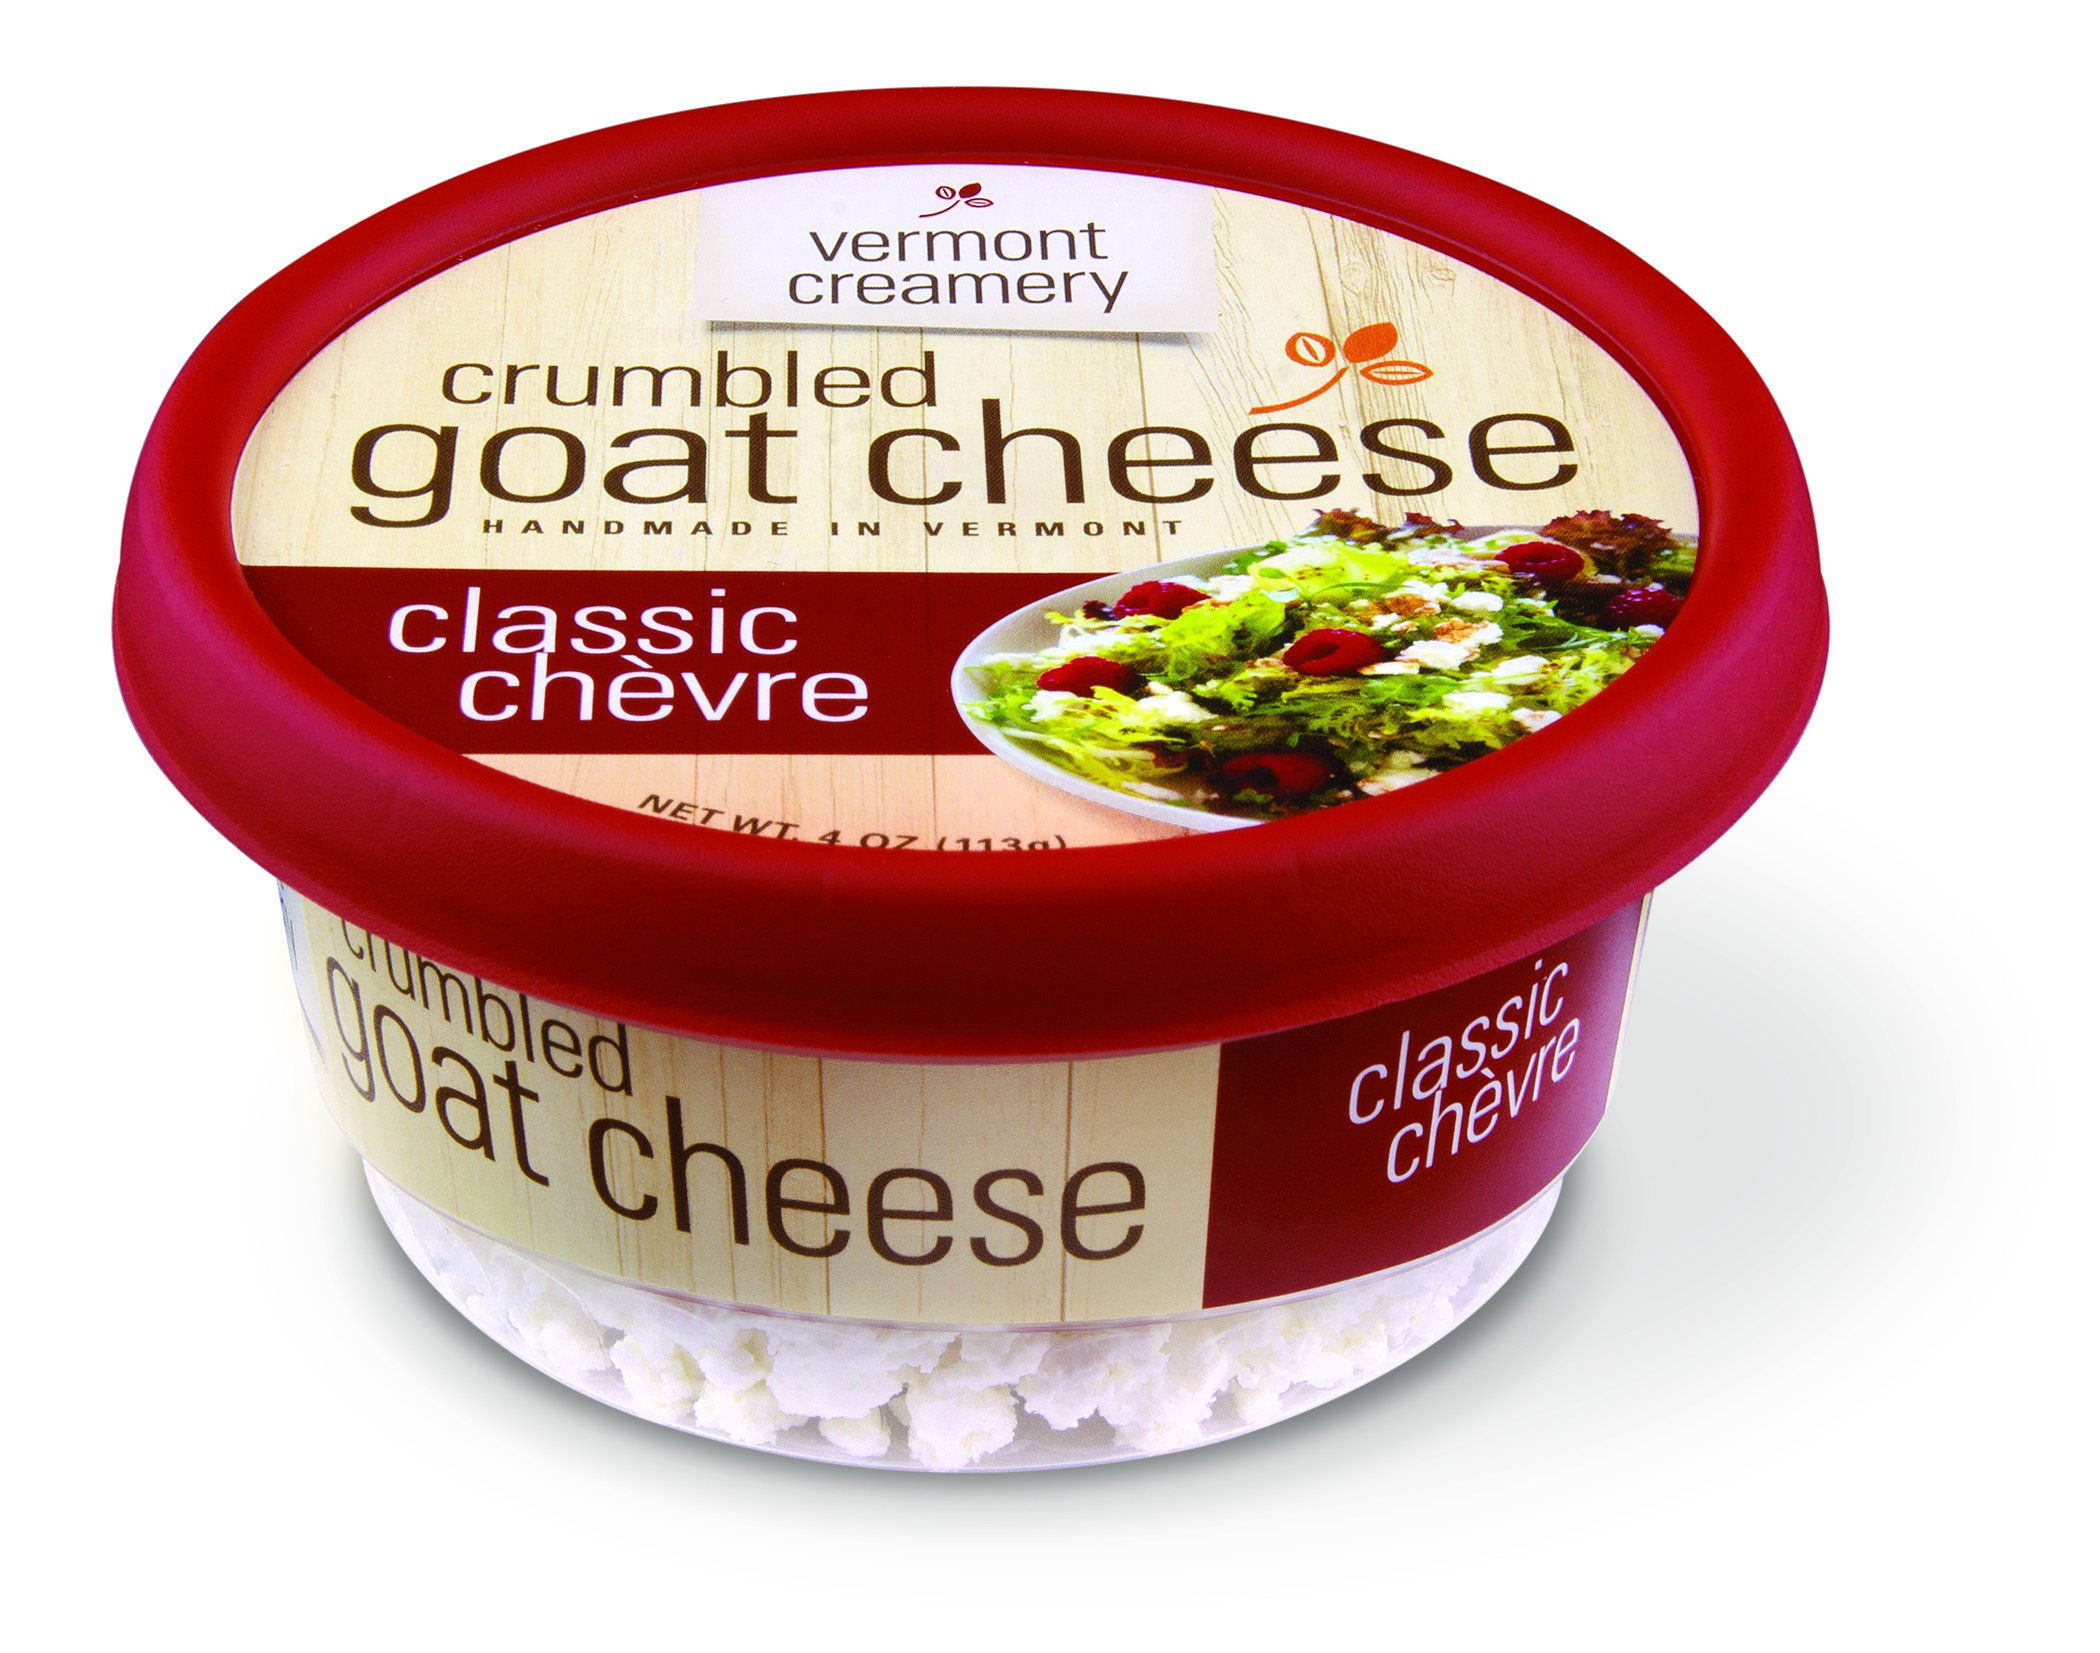 Vermont Creamery Goat Cheese Classic Crumbled, 4 oz